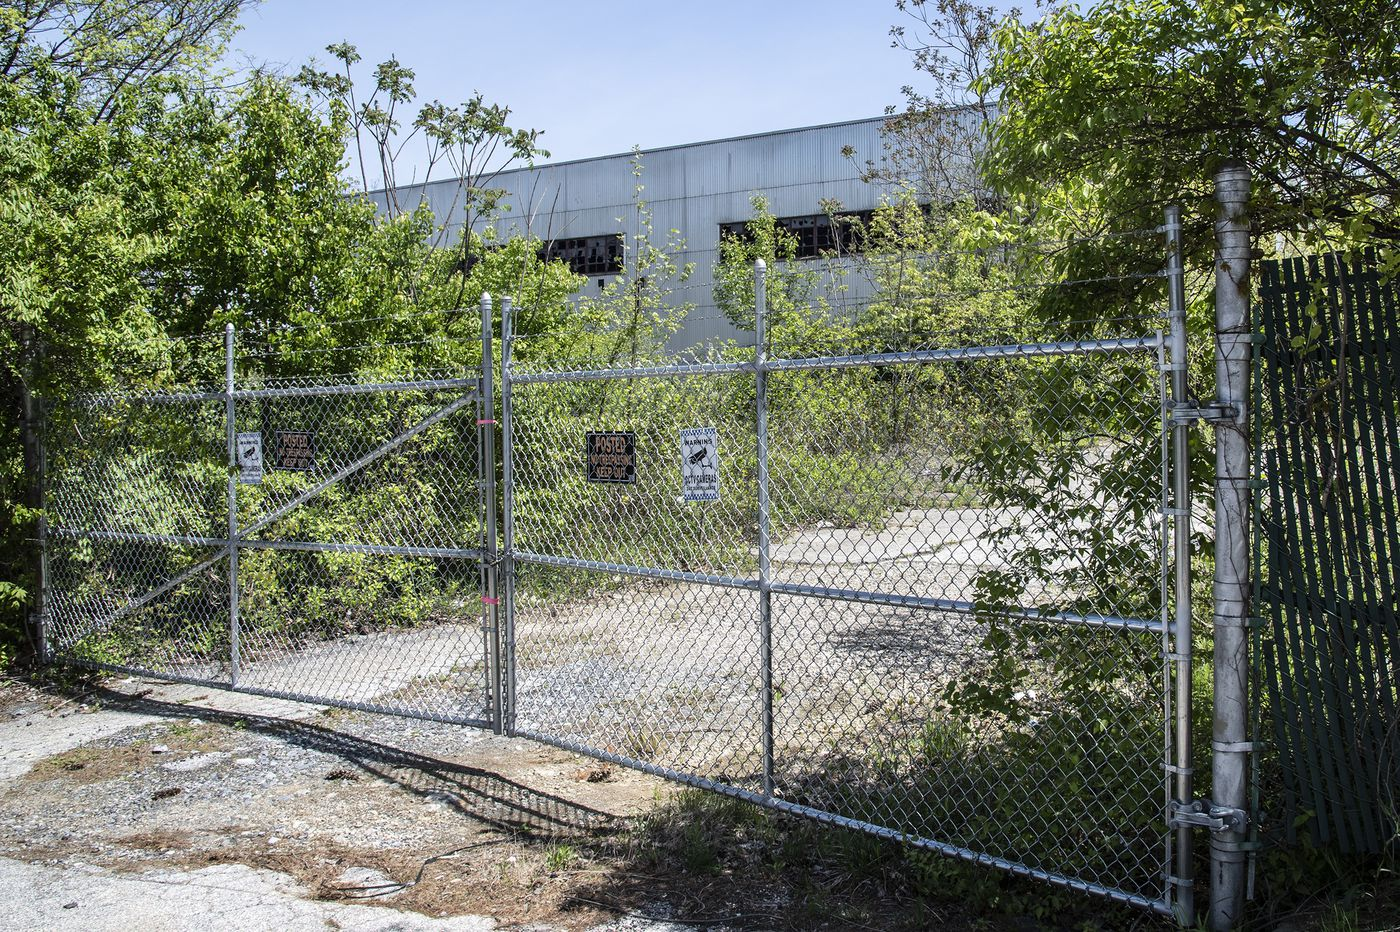 Plan to build housing on contaminated Bishop Tube site in Chester County faces major setback